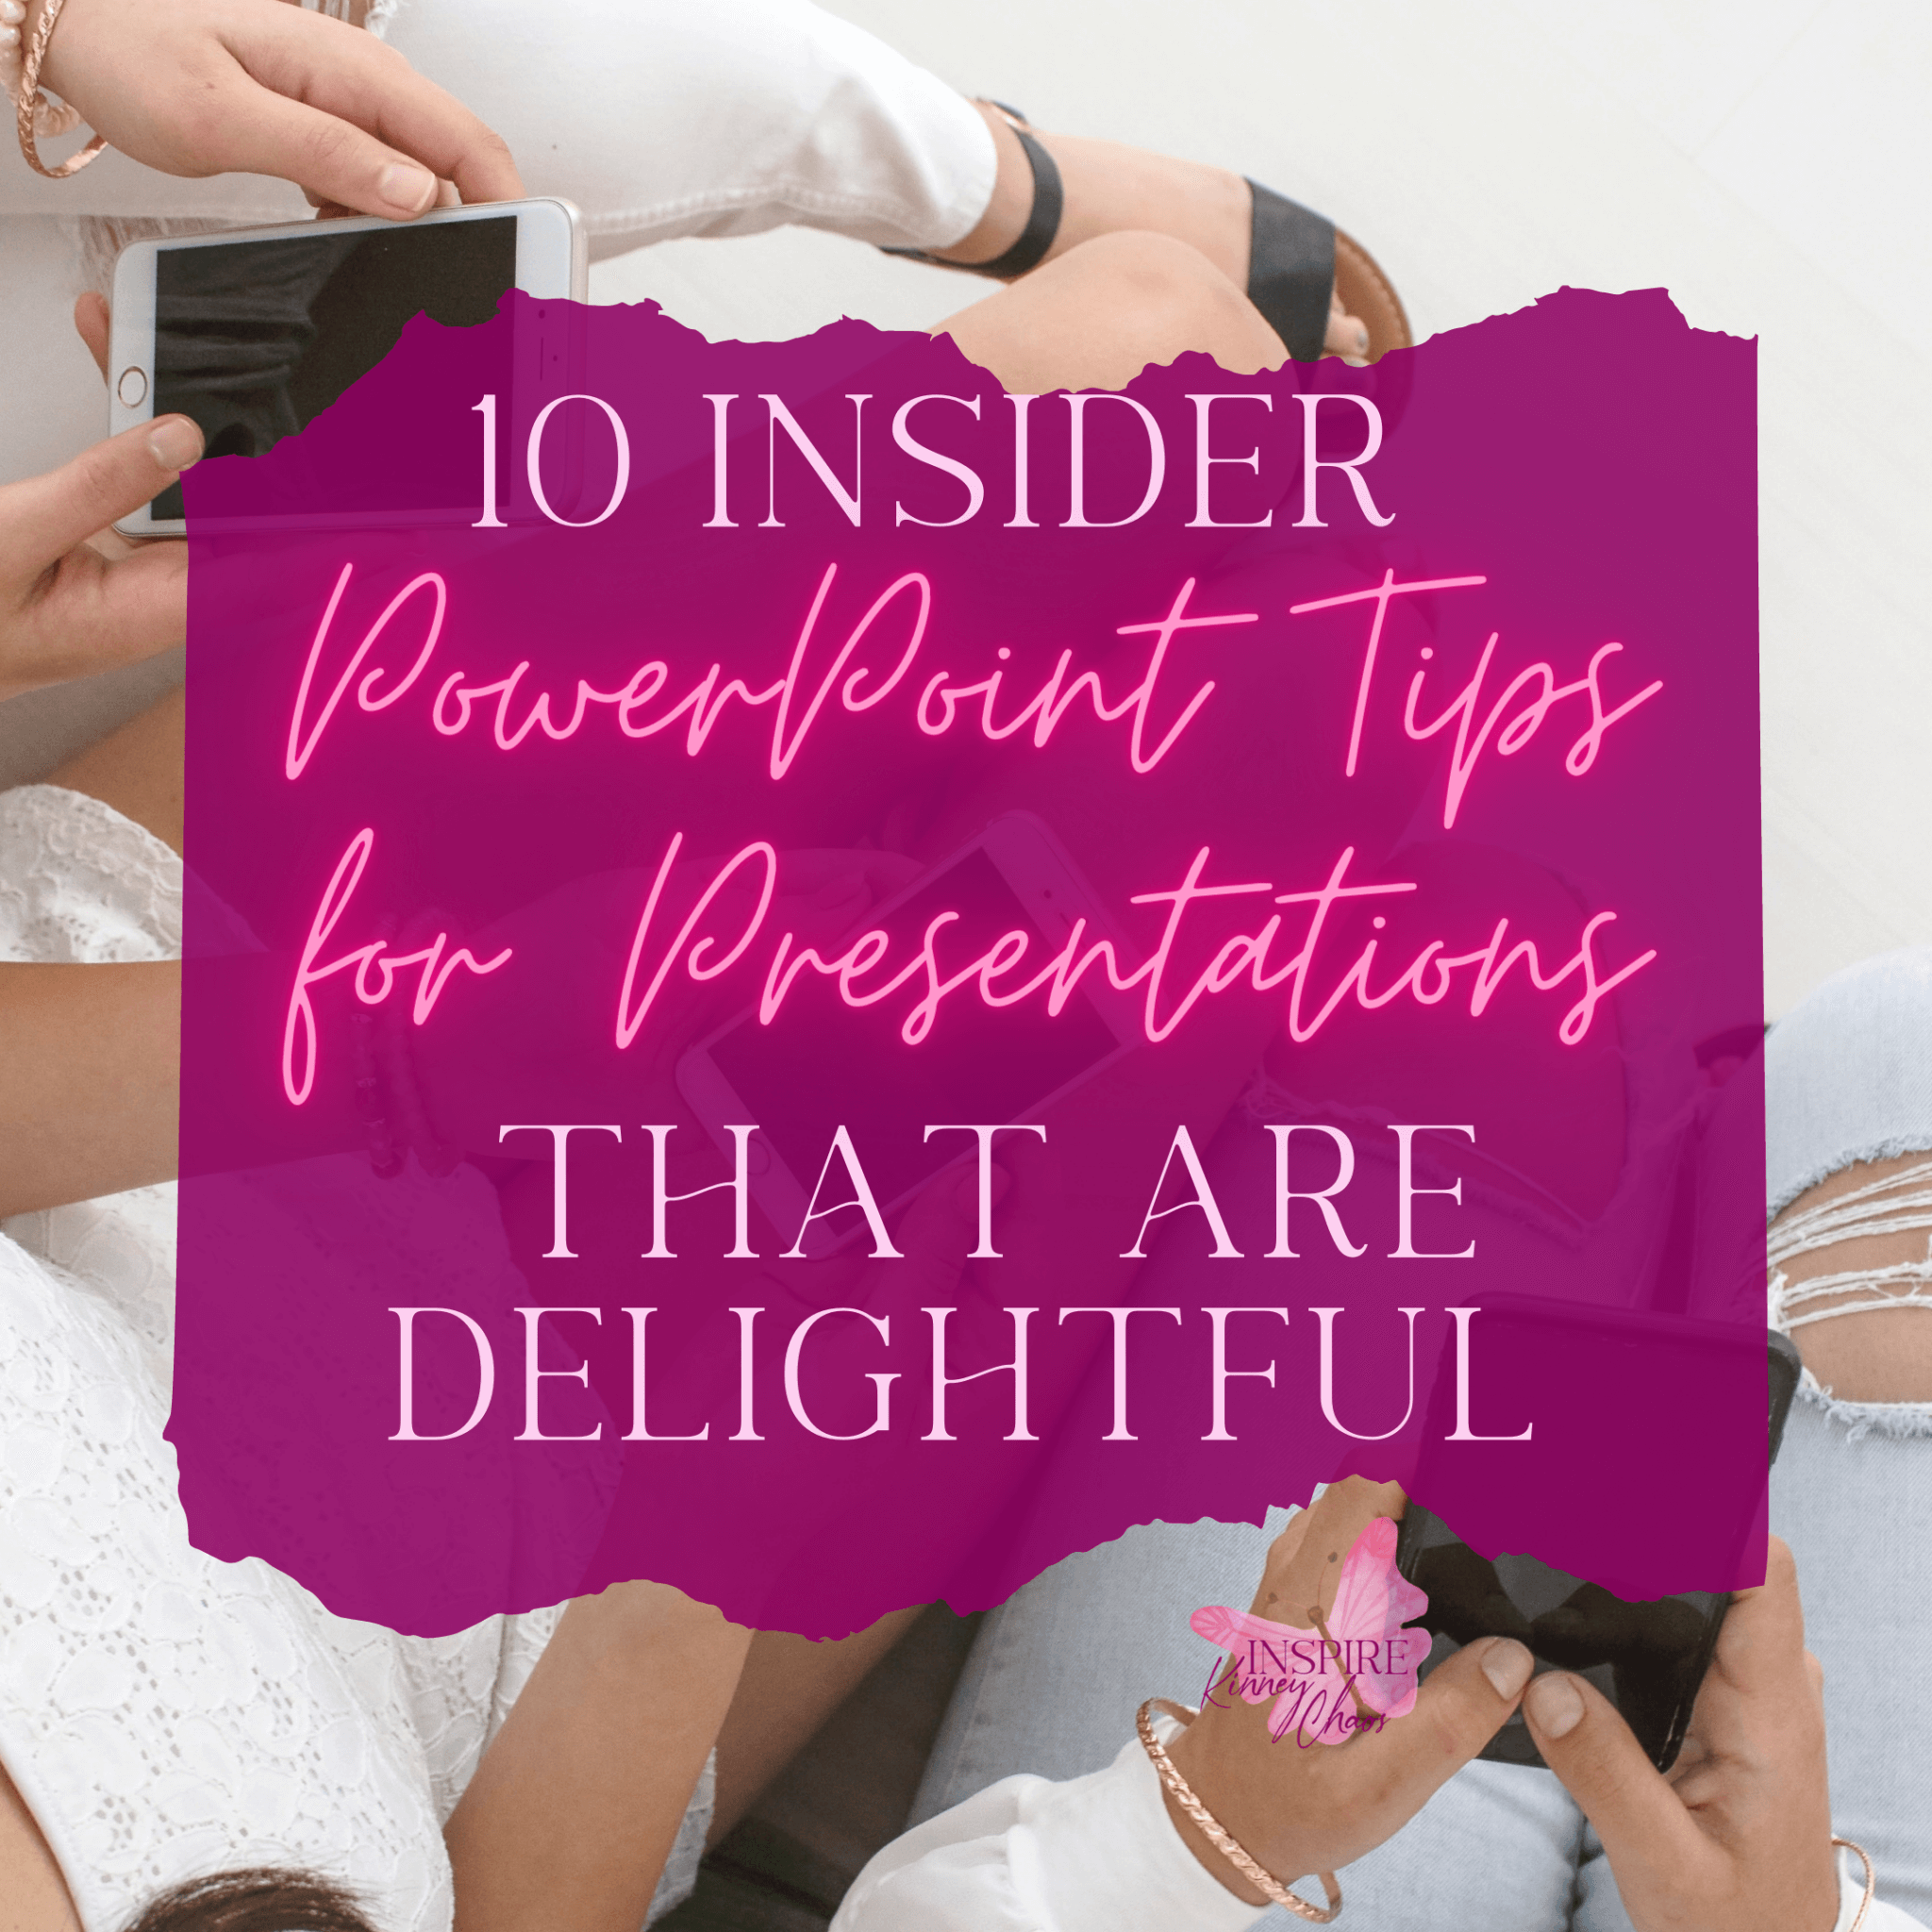 Do you realize you are under using a tool you likely already have? Discover these 10 insider Microsoft PowerPoint tips for presentations that will leave you delighted.